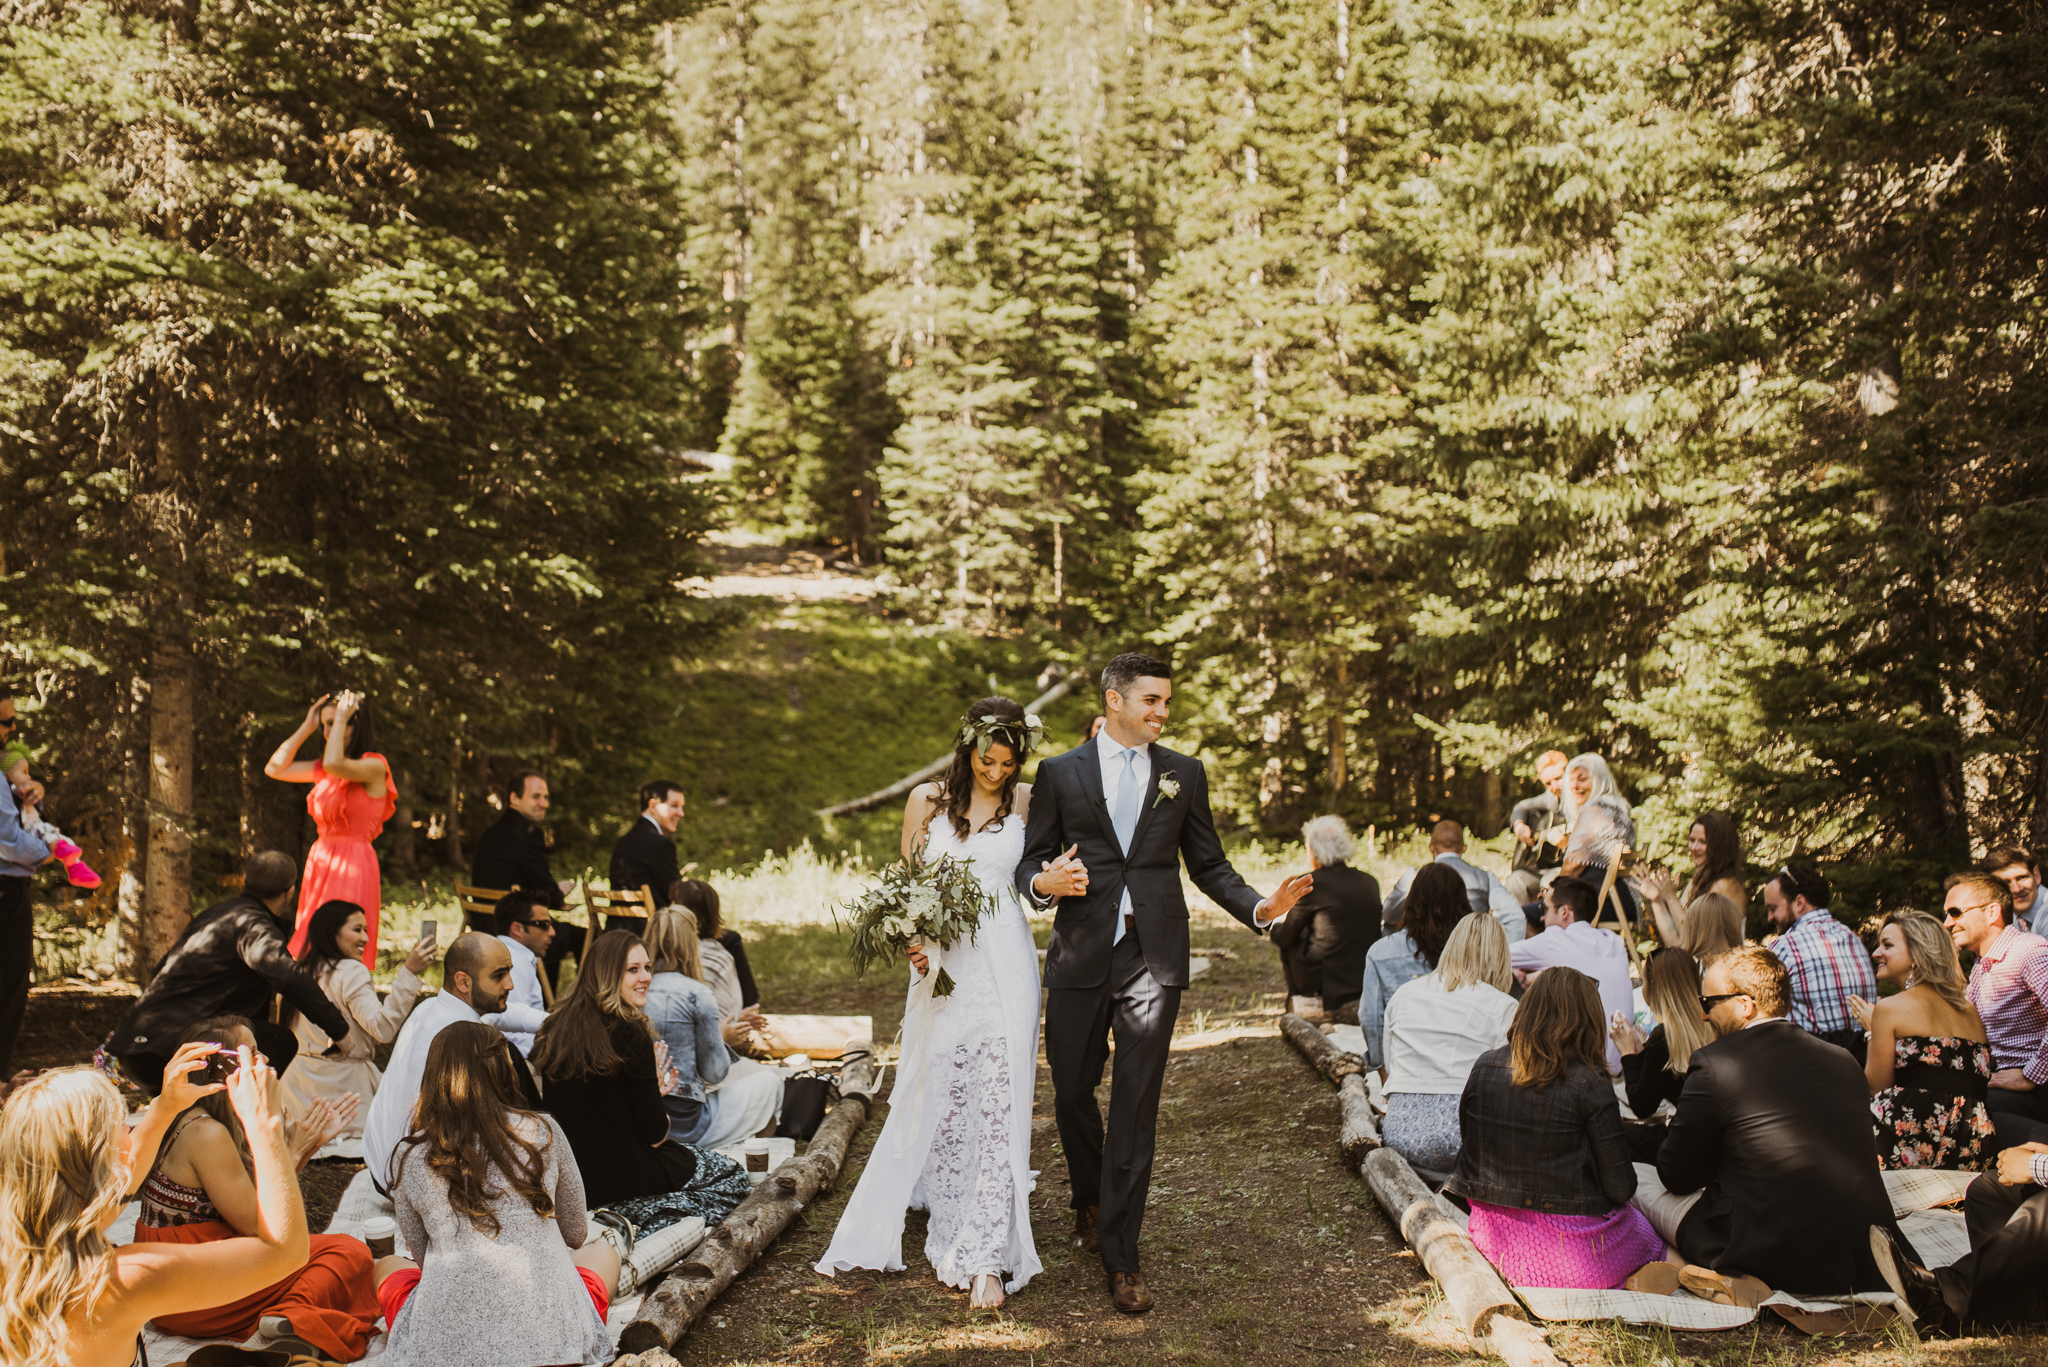 ©Isaiah + Taylor Photography - Estes National Park Adventure Elopement, Colorado Rockies-35.jpg